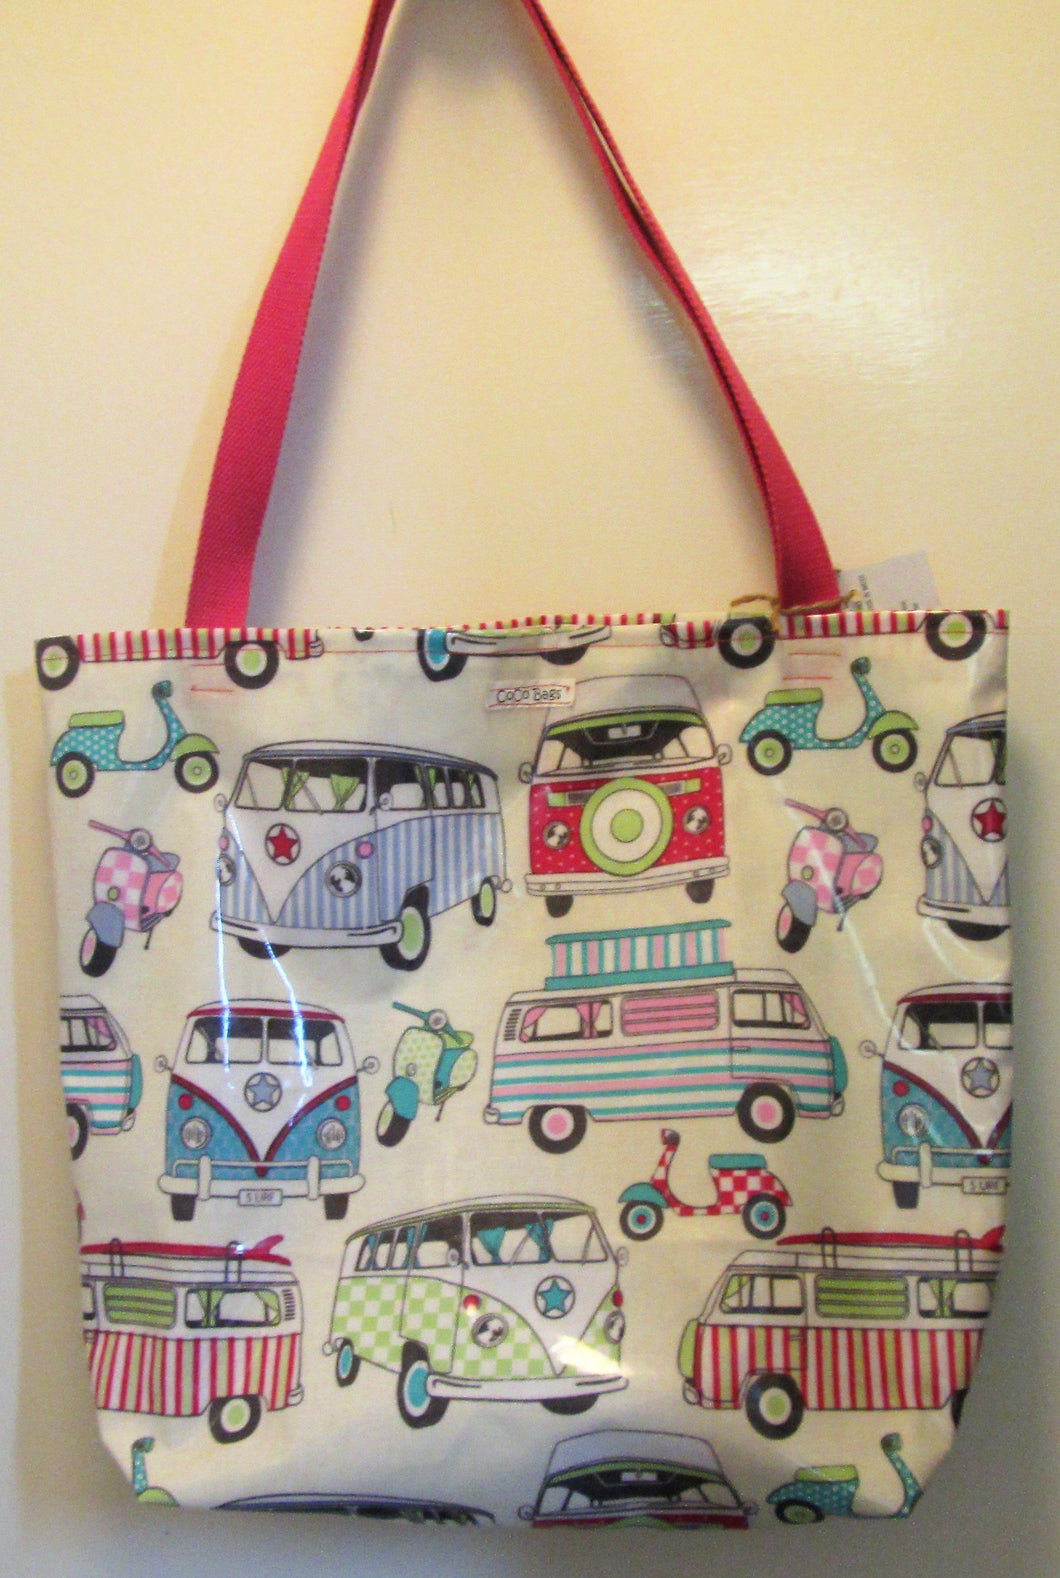 Beautiful handcrafted camper van wax fabric shopper bag with two handles